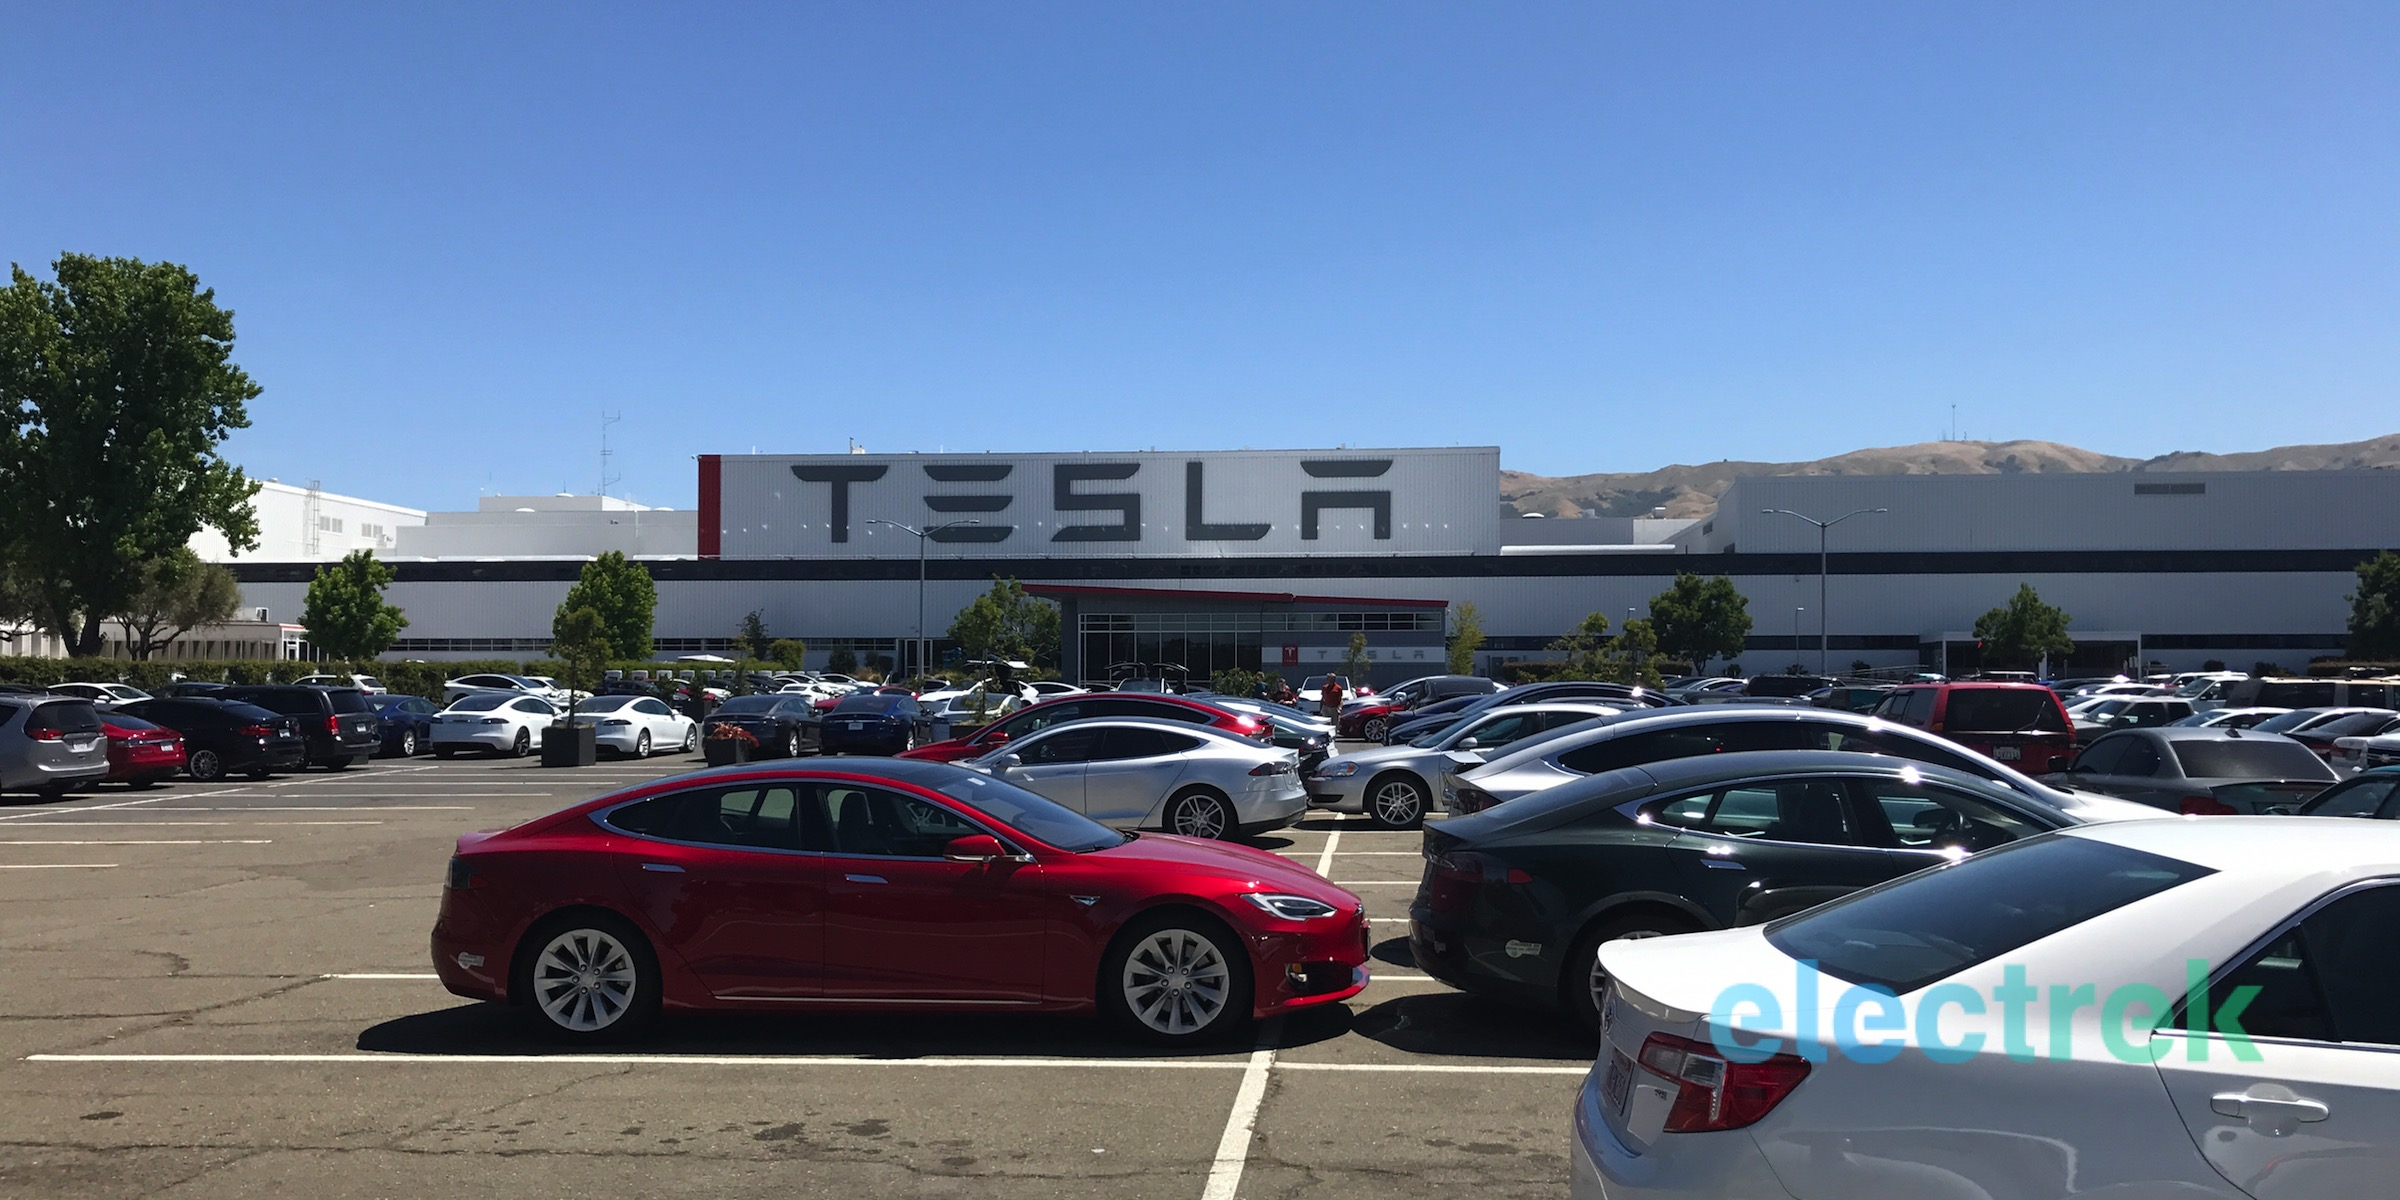 Tesla supplier hints at massive increase in Model 3 production - Electrek